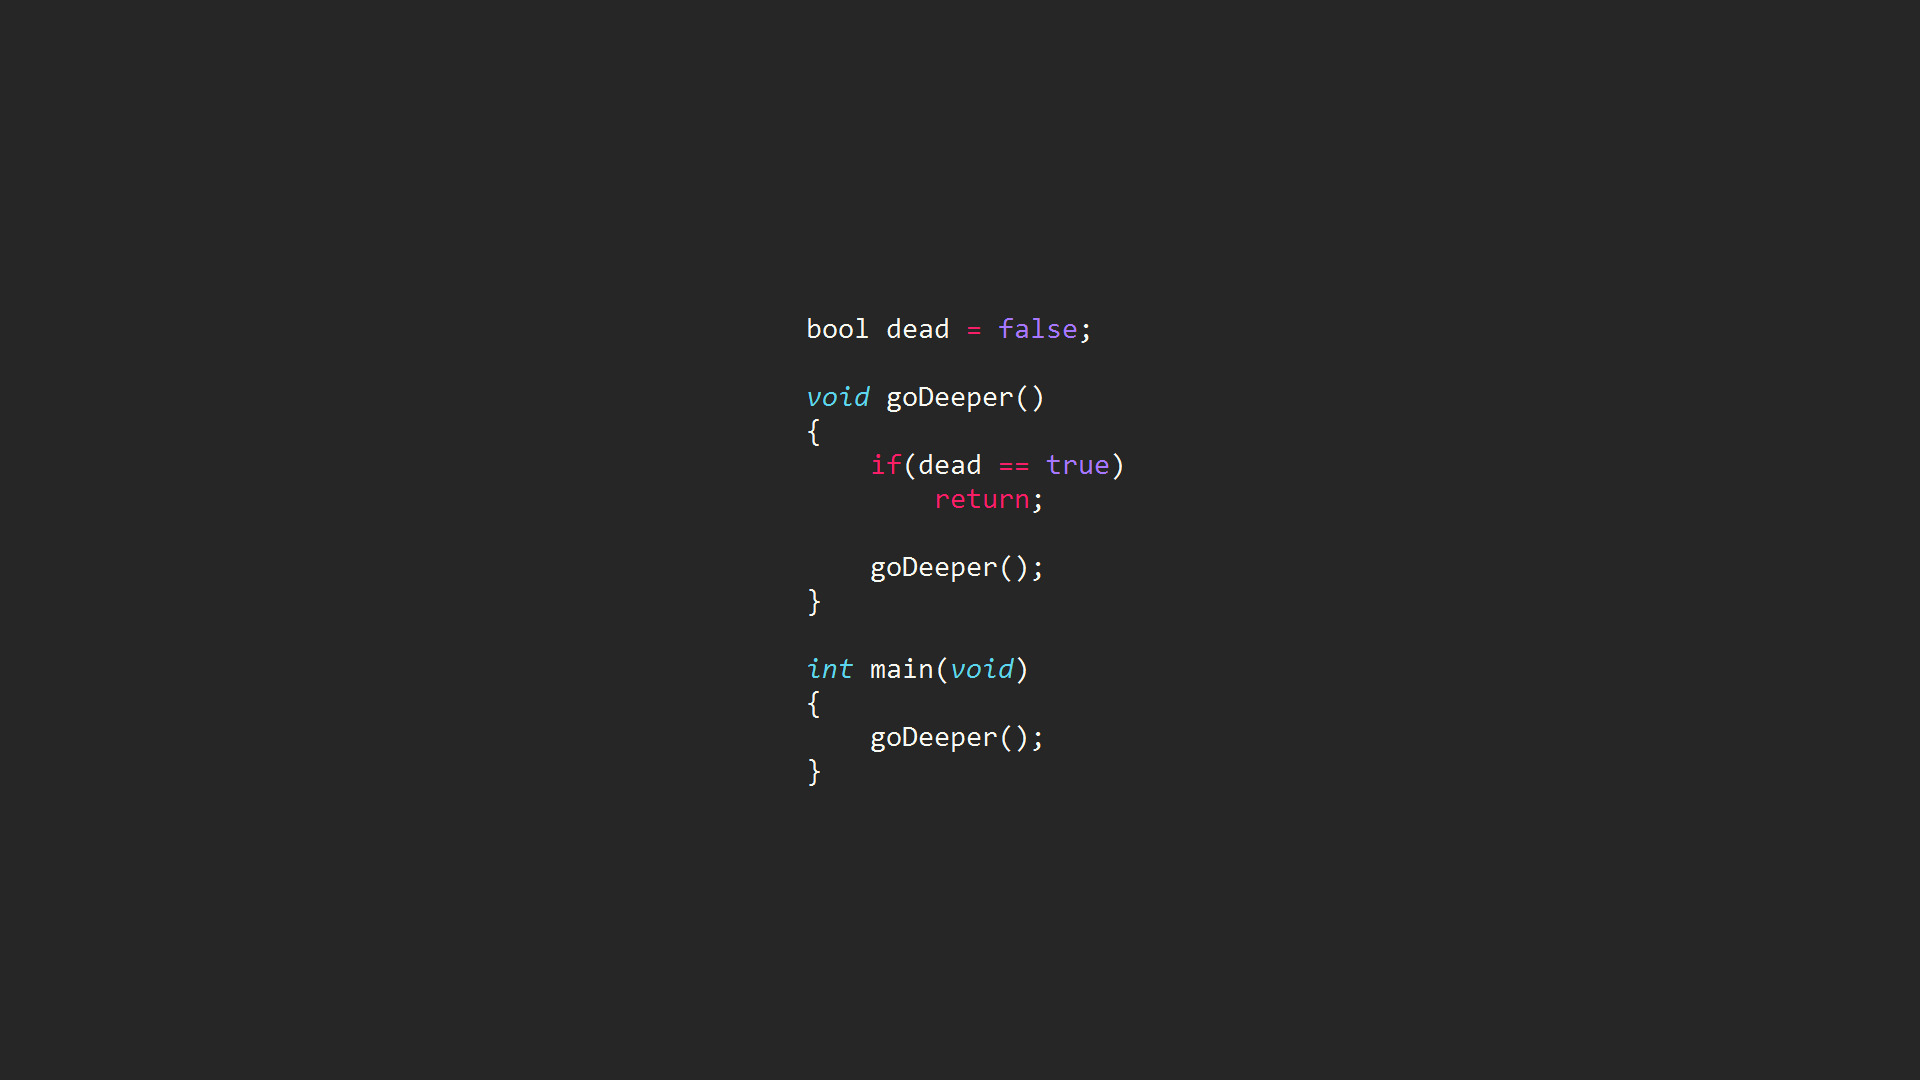 code Computer Syntax Highlighting Inception Programming 1920x1080